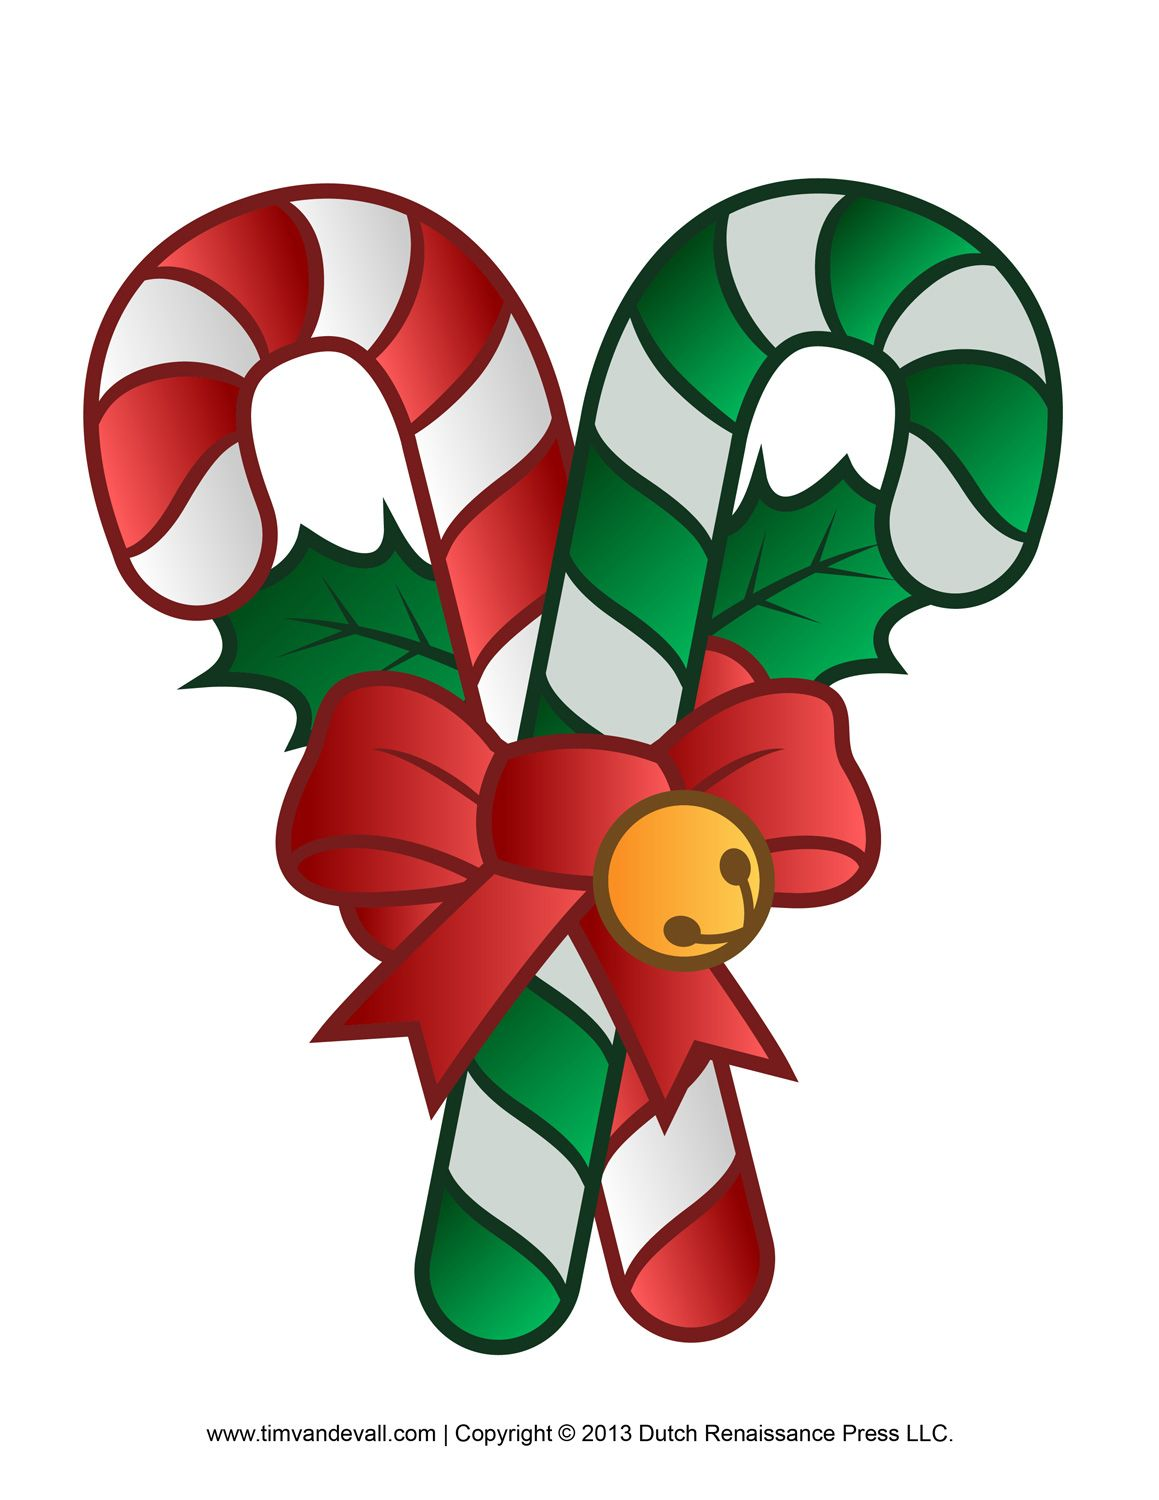 Christmas decorations images clipart - Candy Canes Clipart Candy Canes Clip Art Images Clipartall Com